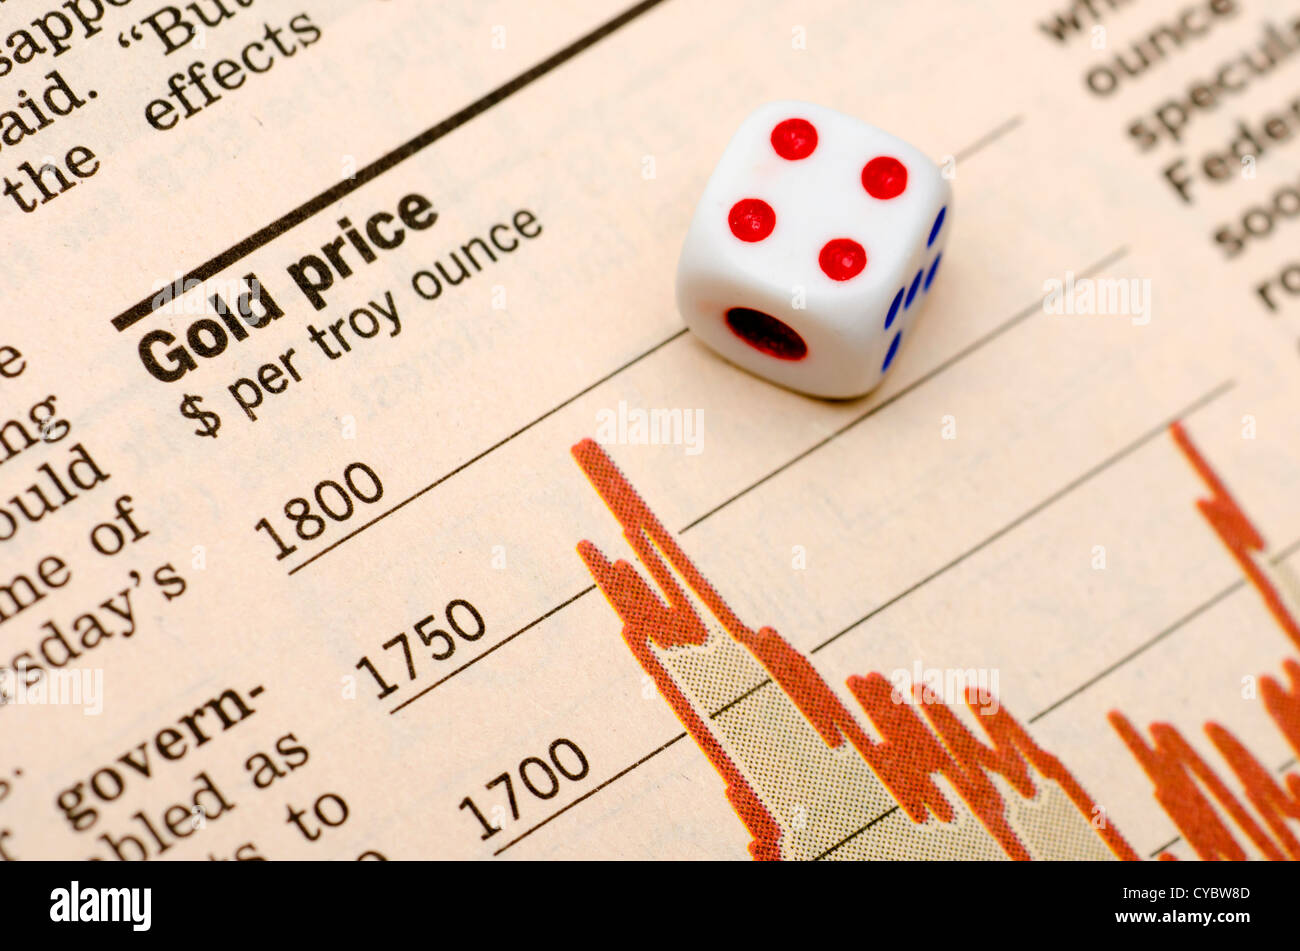 Gold price graph with dice - Stock Image